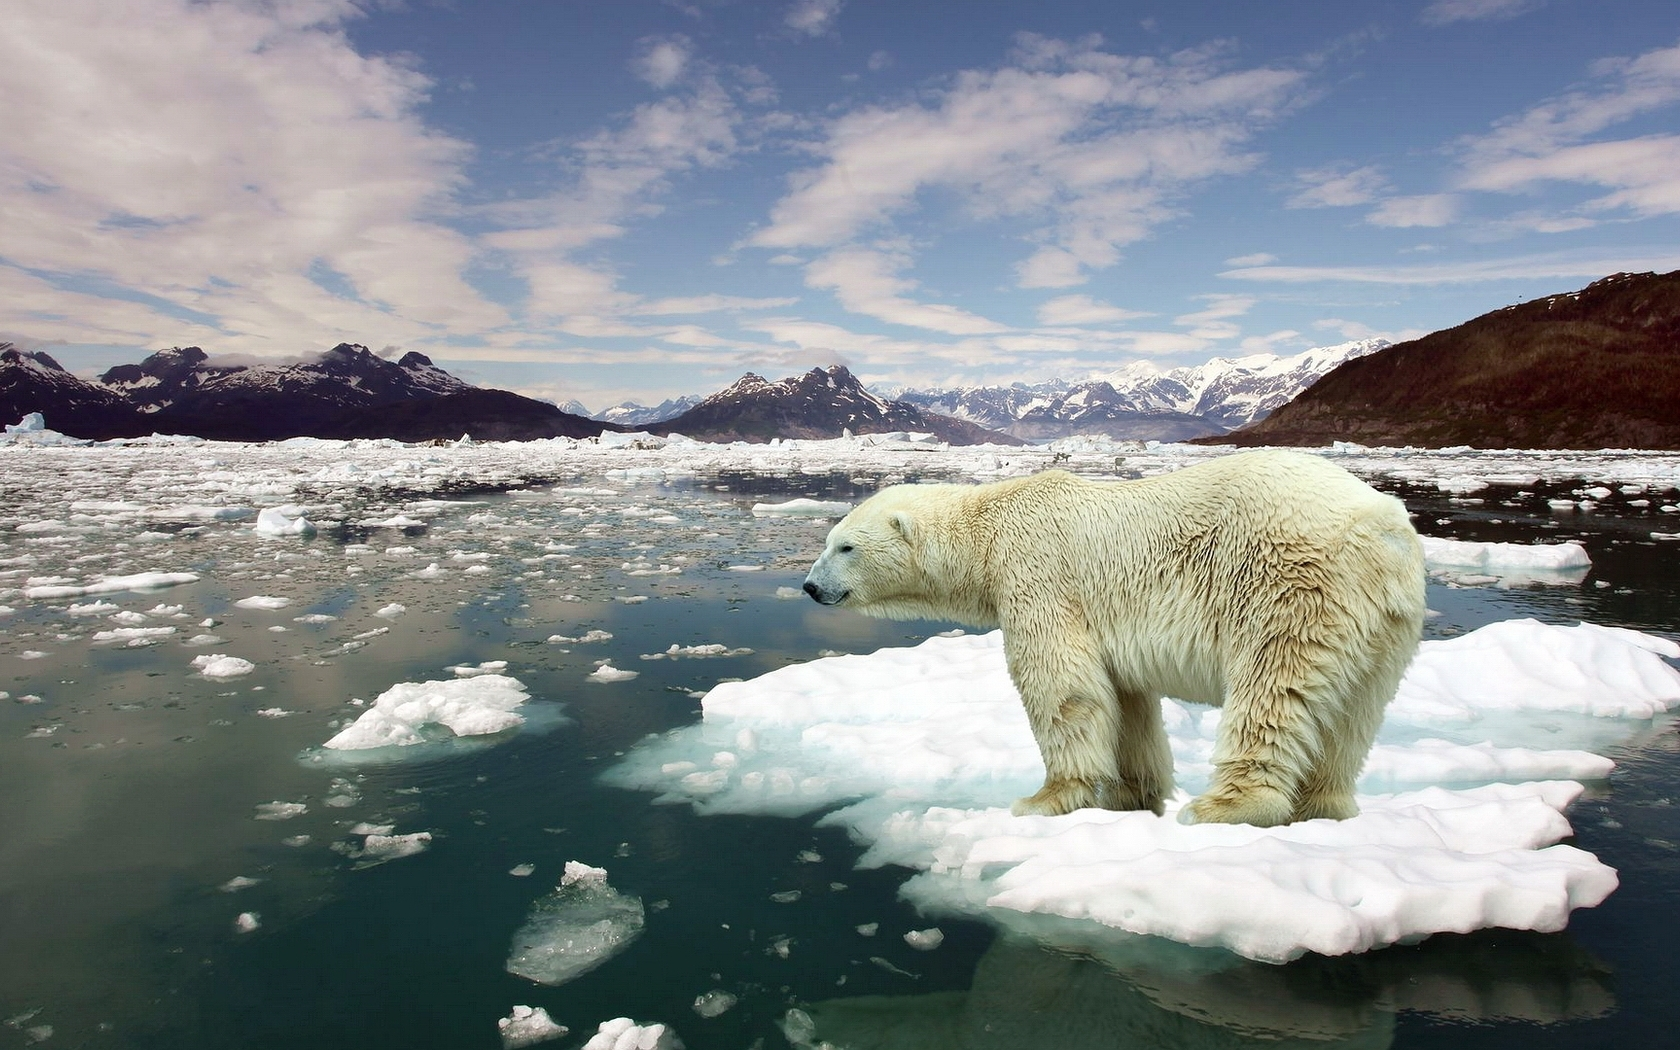 45941 download wallpaper Animals, Landscape, Sea, Bears screensavers and pictures for free